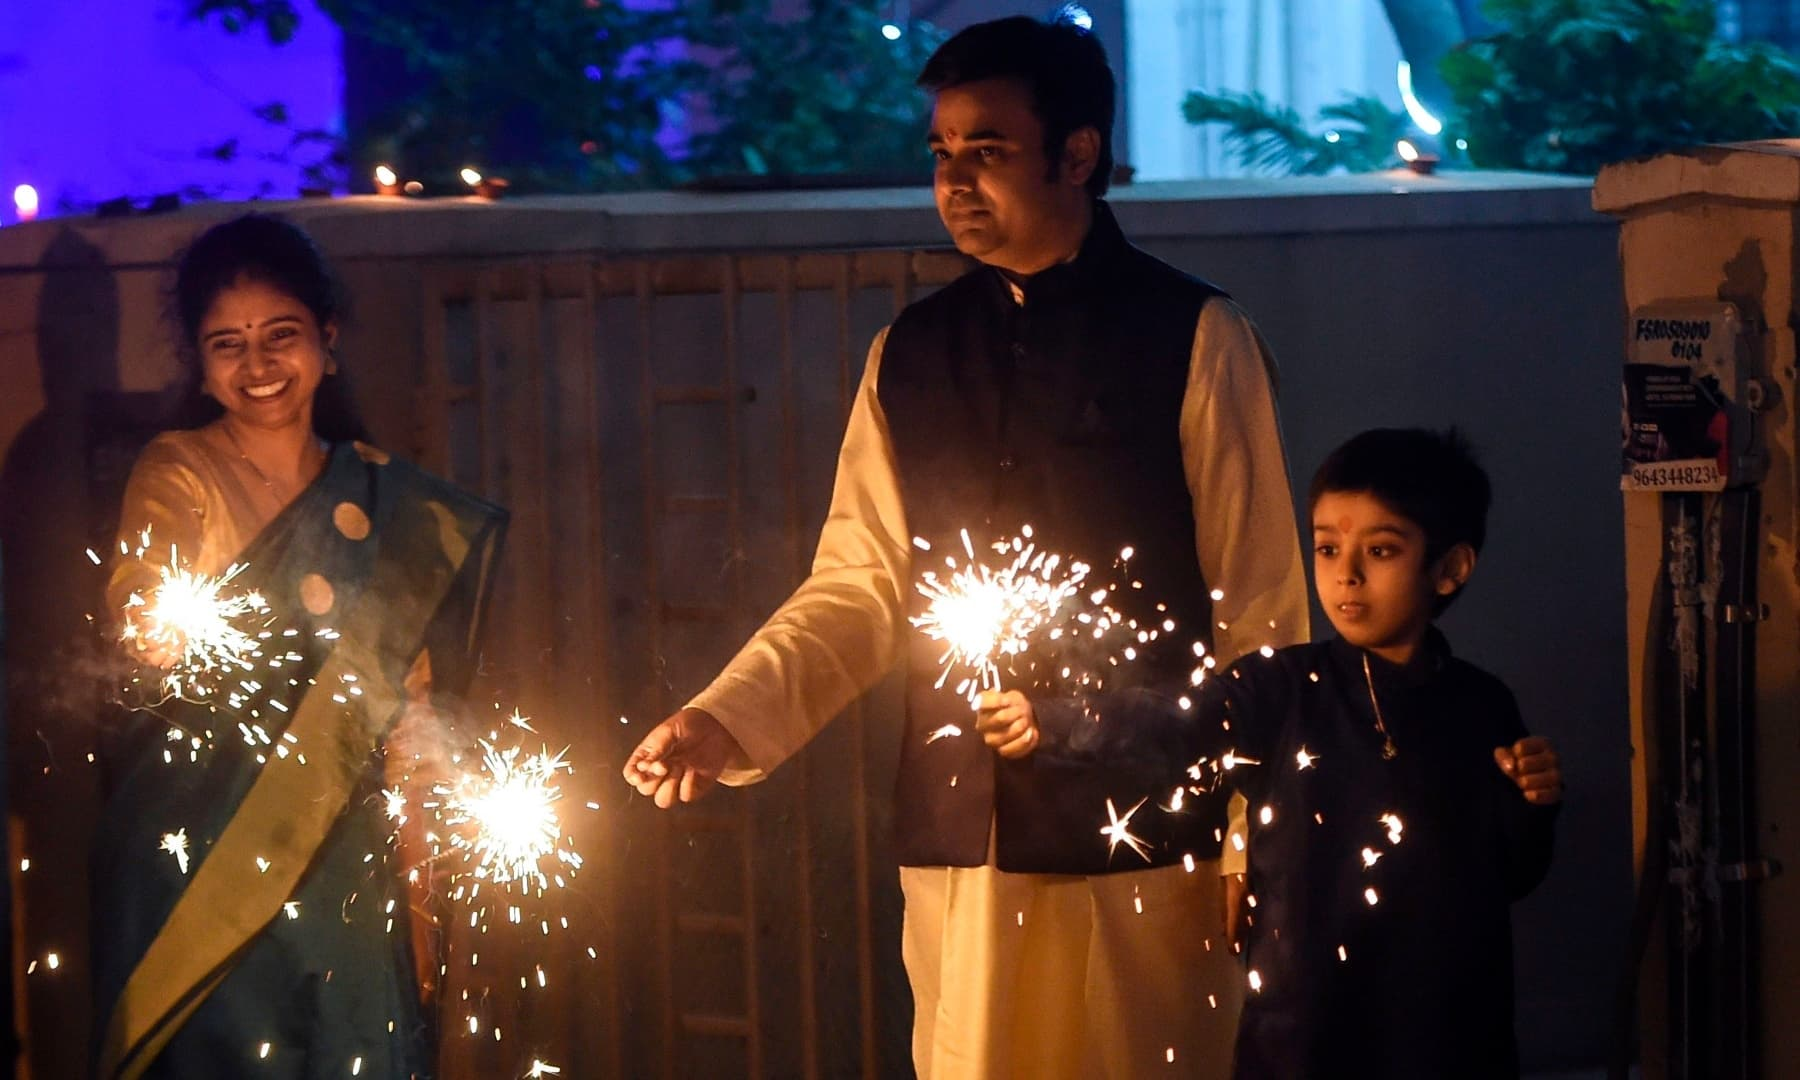 A family lights a sparkler during Diwali in Faridabad, India on Saturday. — AFP